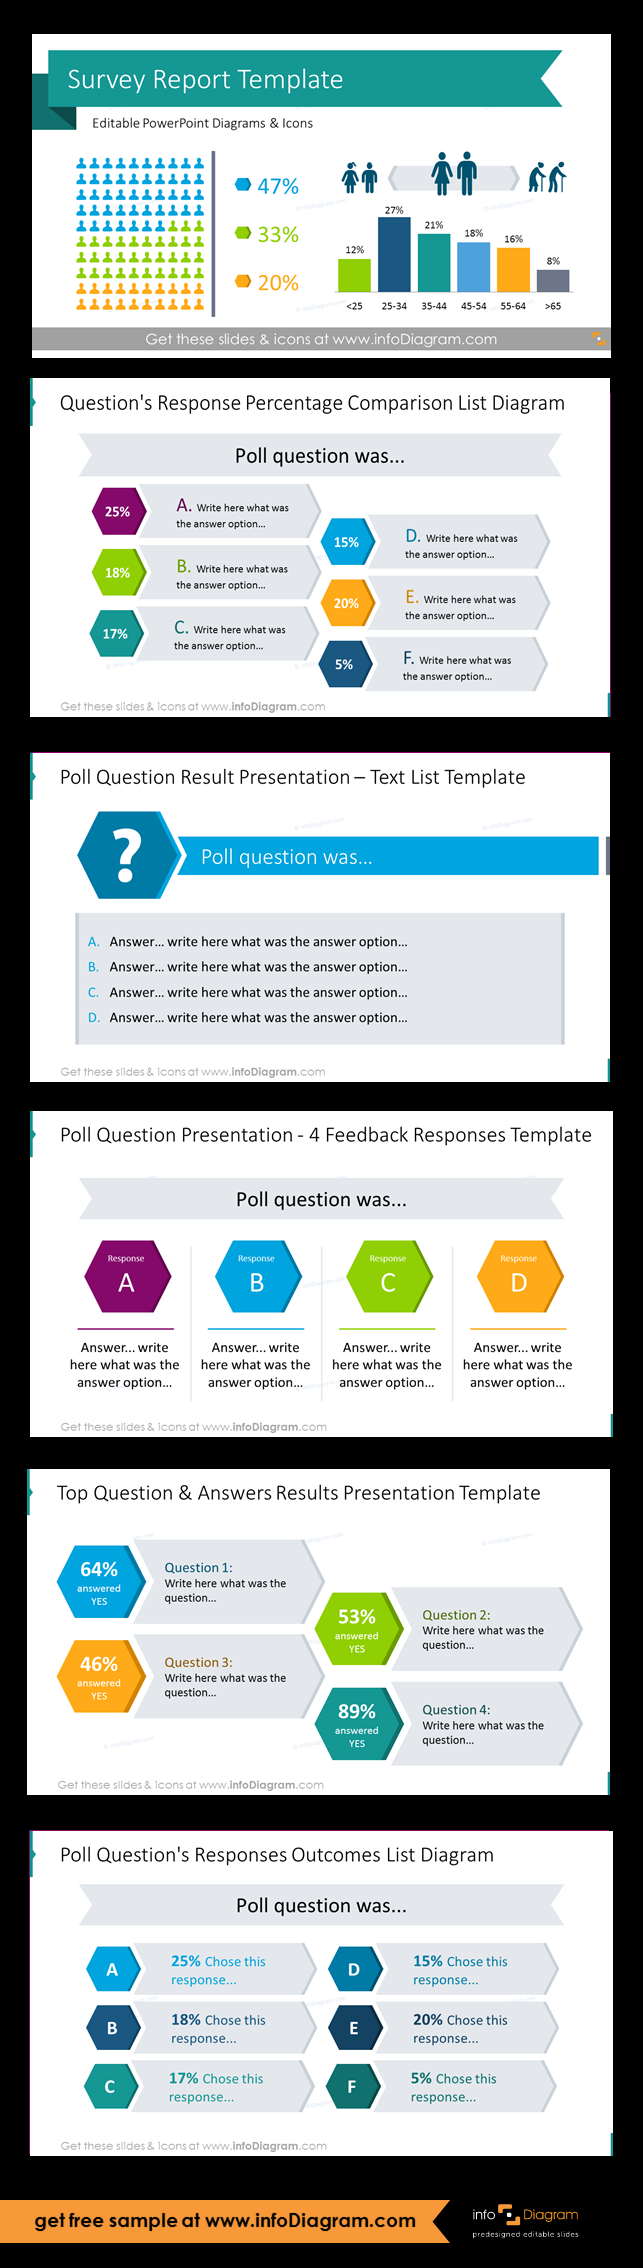 Presentation Template for presenting Survey Results in for